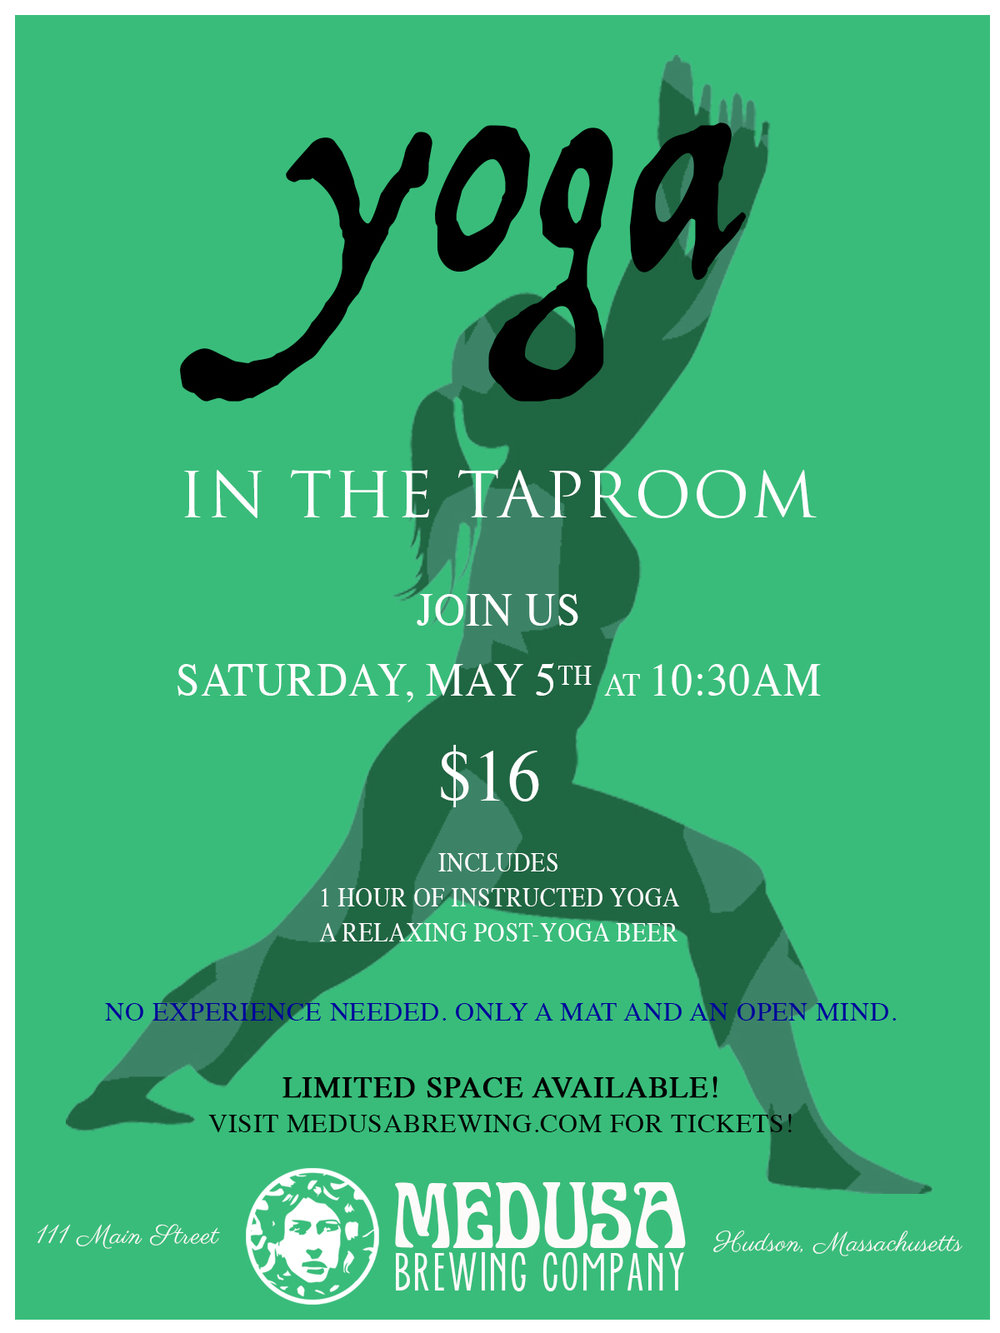 Yoga-in-the-Taproom-421.jpg